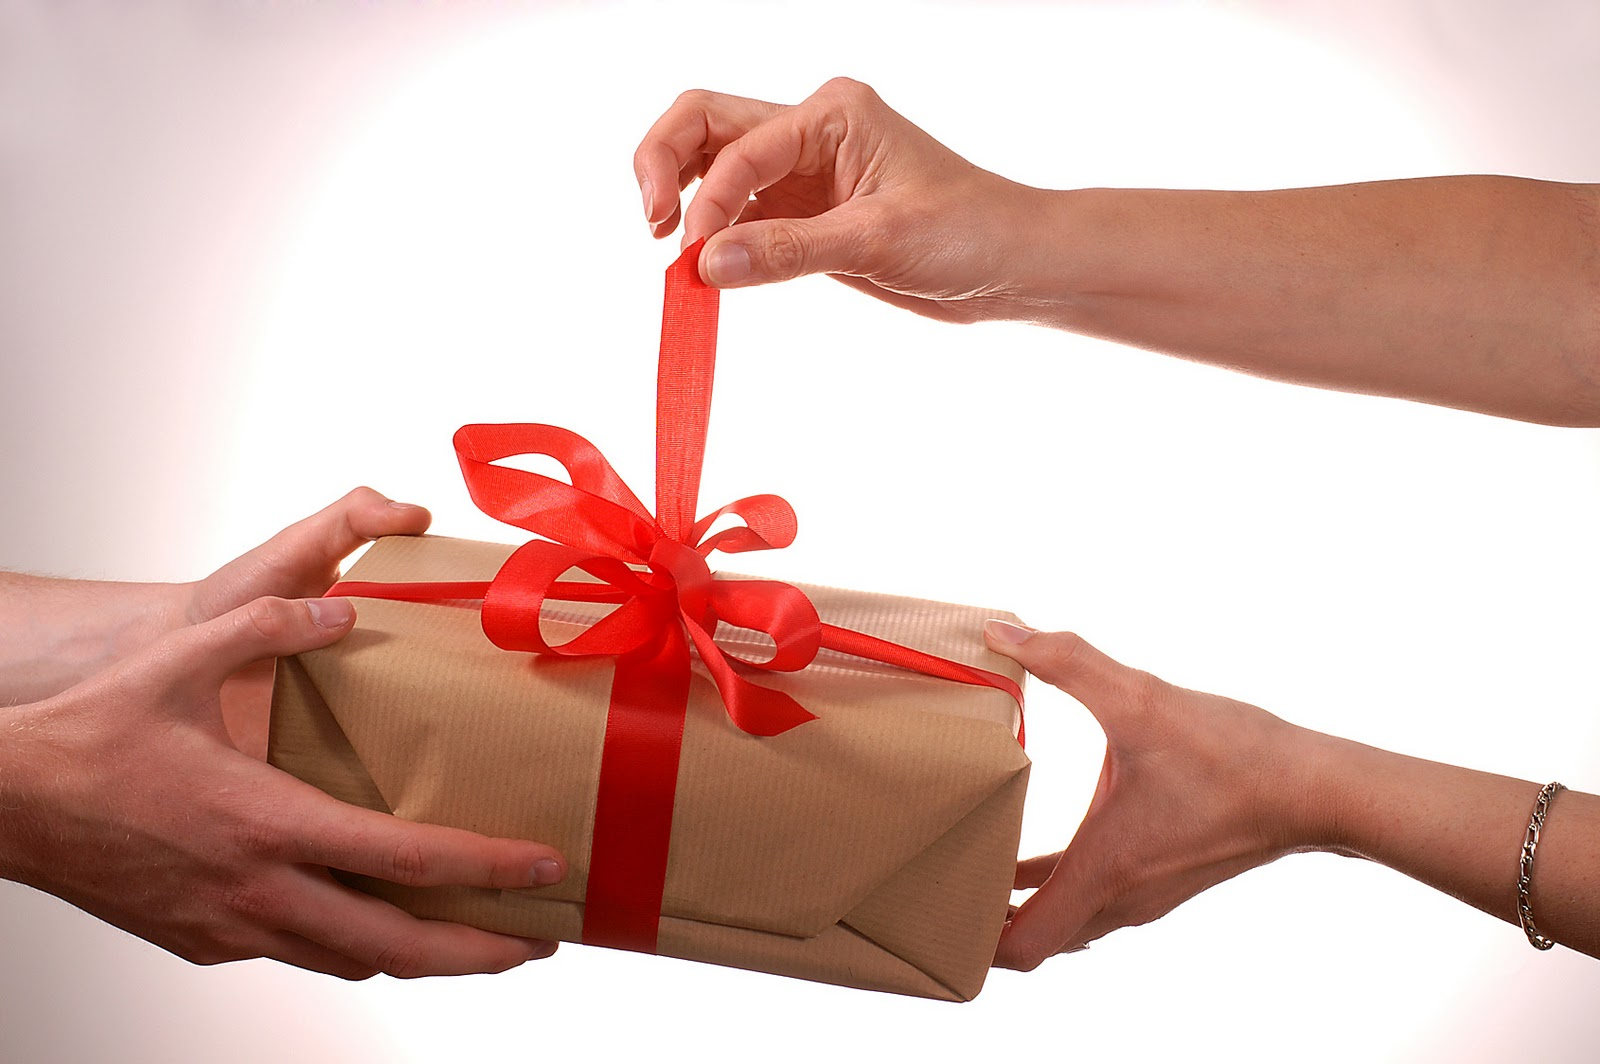 Unusual Gifts For A Woman - 3 Gift-Choosing Tips